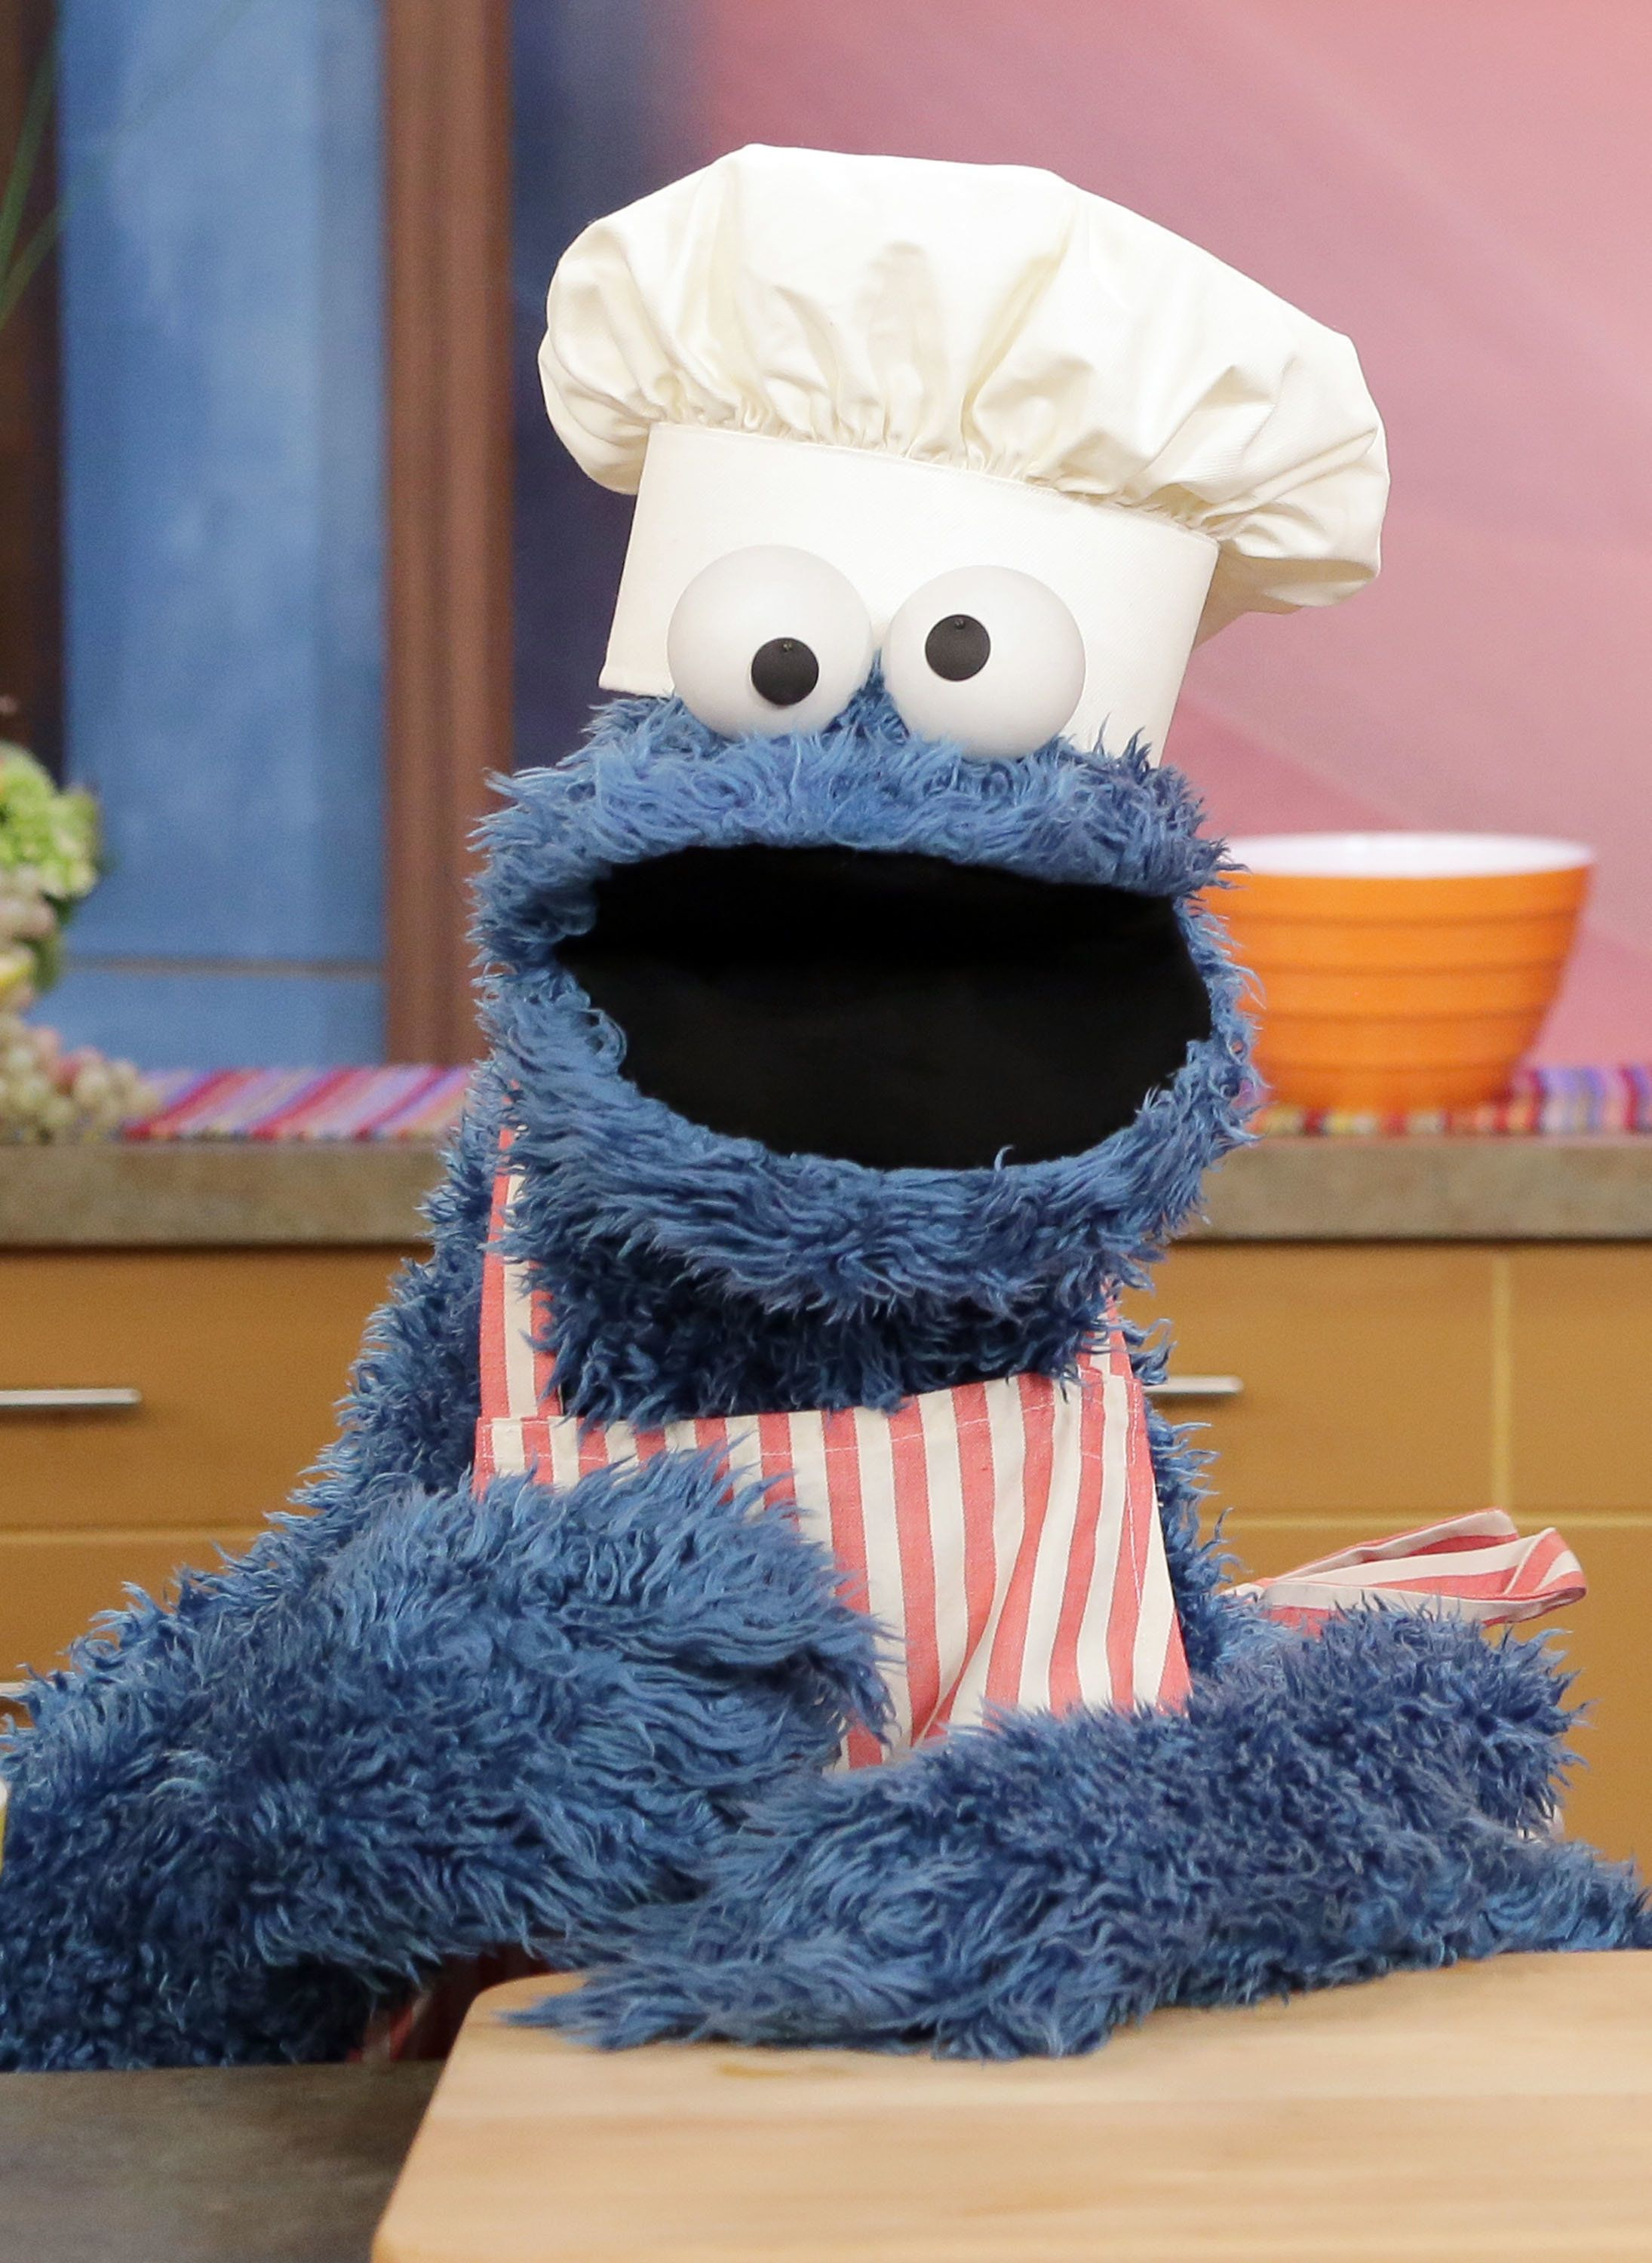 MIAMI, FL - JULY 12:  Cookie Monster is seen during Sesame Street's visit of Univision's 'Despierta America' at Univision Headquarters on July 12, 2013 in Miami, Florida. (Photo by Alexander Tamargo/WireImage)